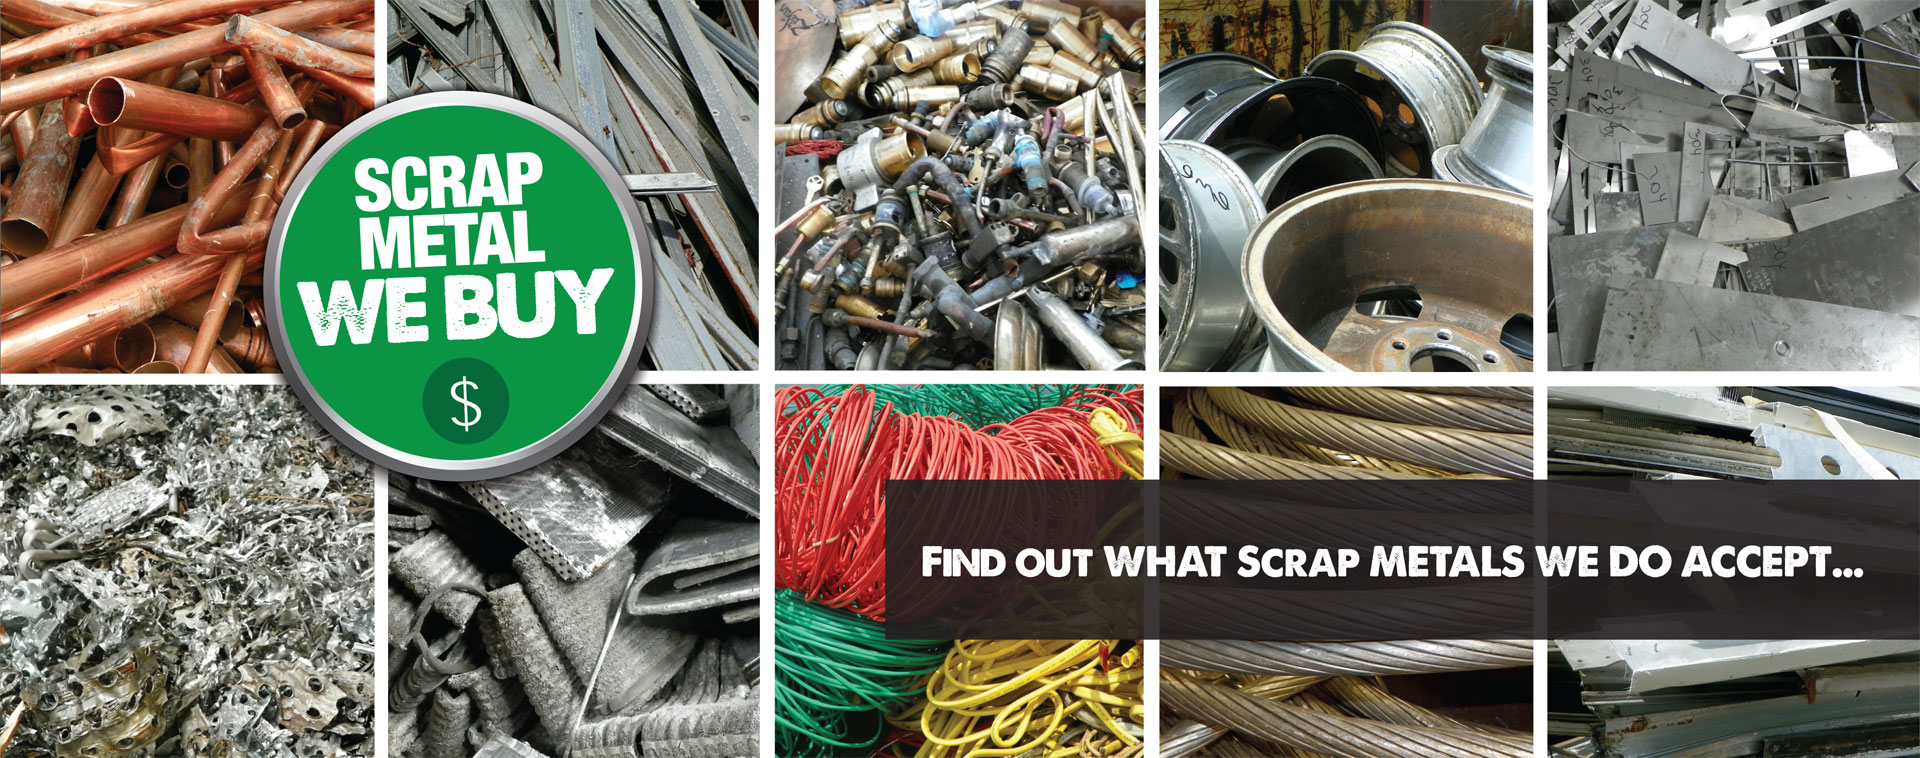 Scrap Metals We Accept - Astro City Scrap Metal